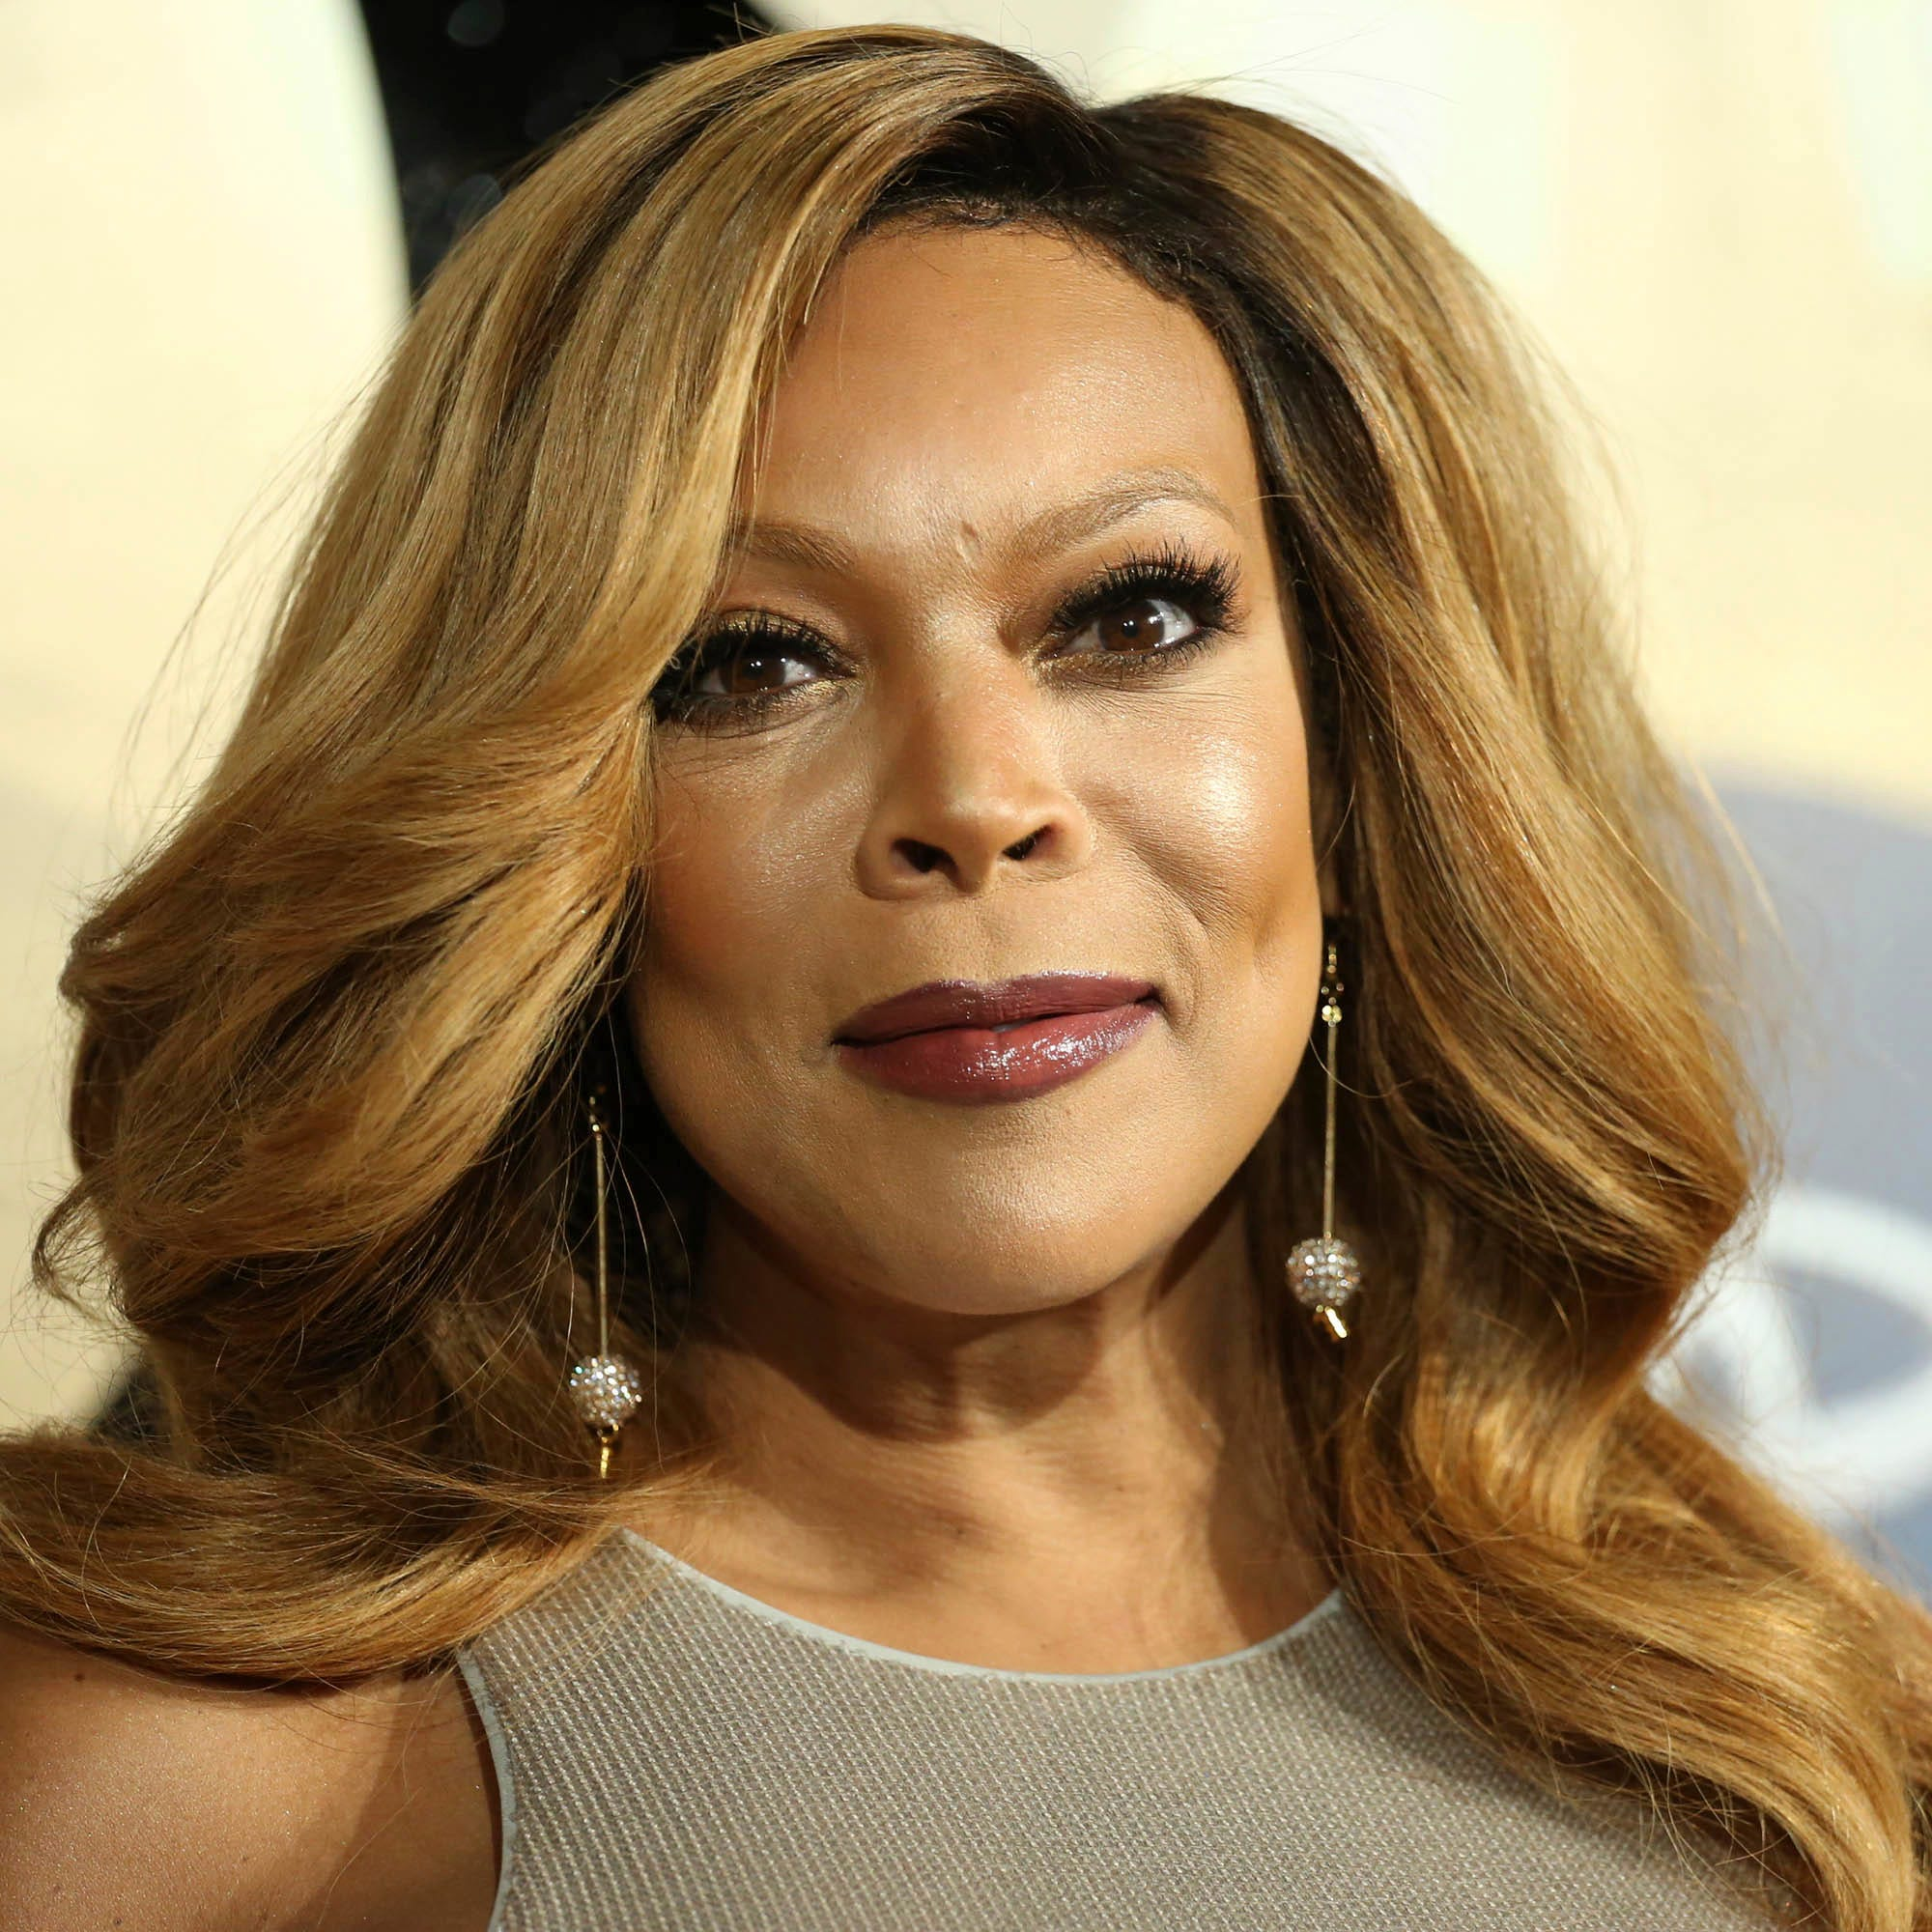 Wendy Williams, NJ native, reveals she has been 'living in a sober house,' recalls past cocaine abuse